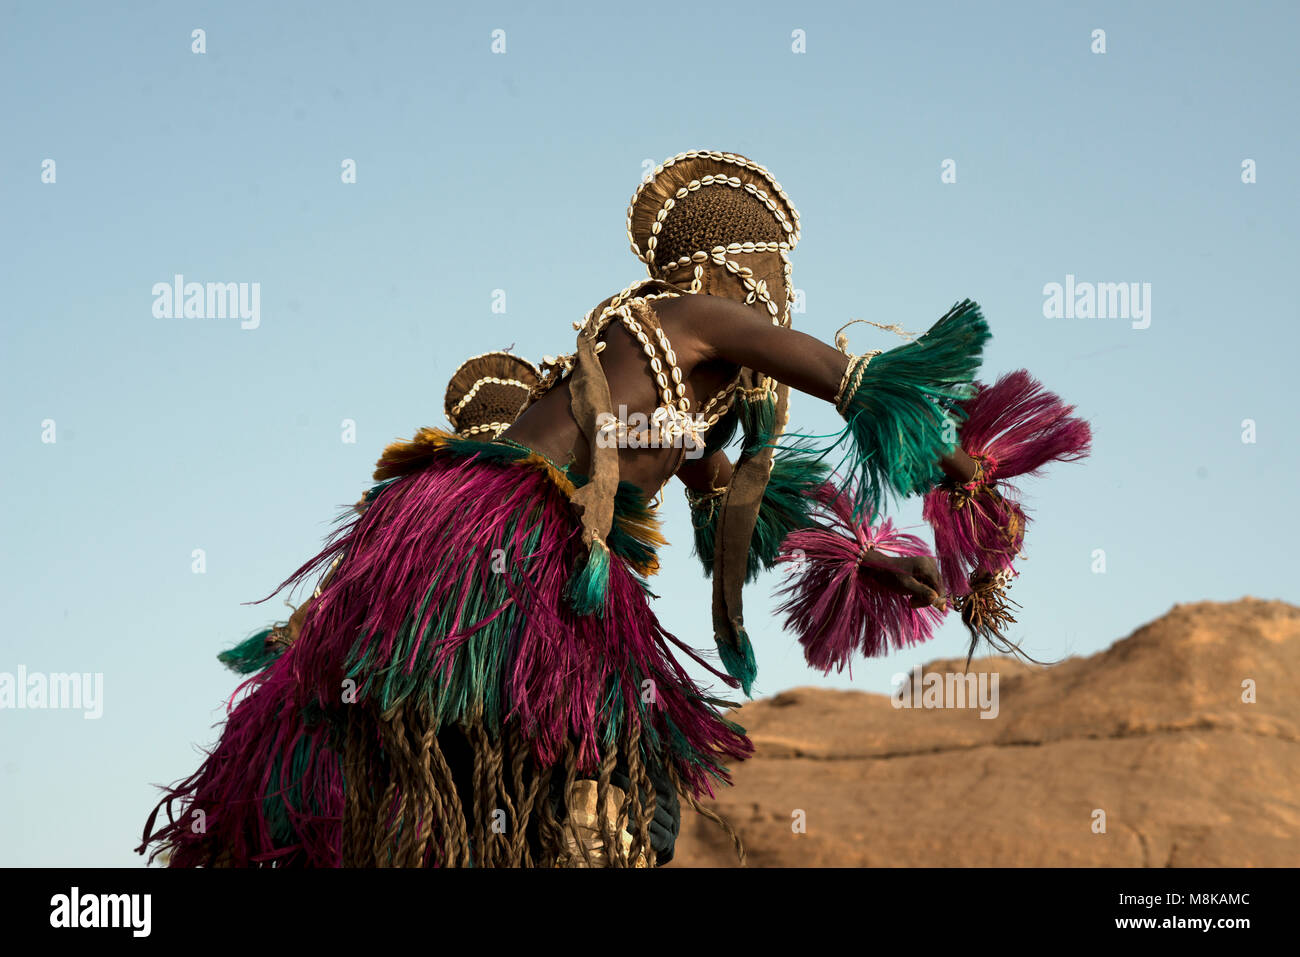 A Dogon man is a masked dancer as he participates in an ancient tribal dance ritual in his clifftop village in Mali, - Stock Image